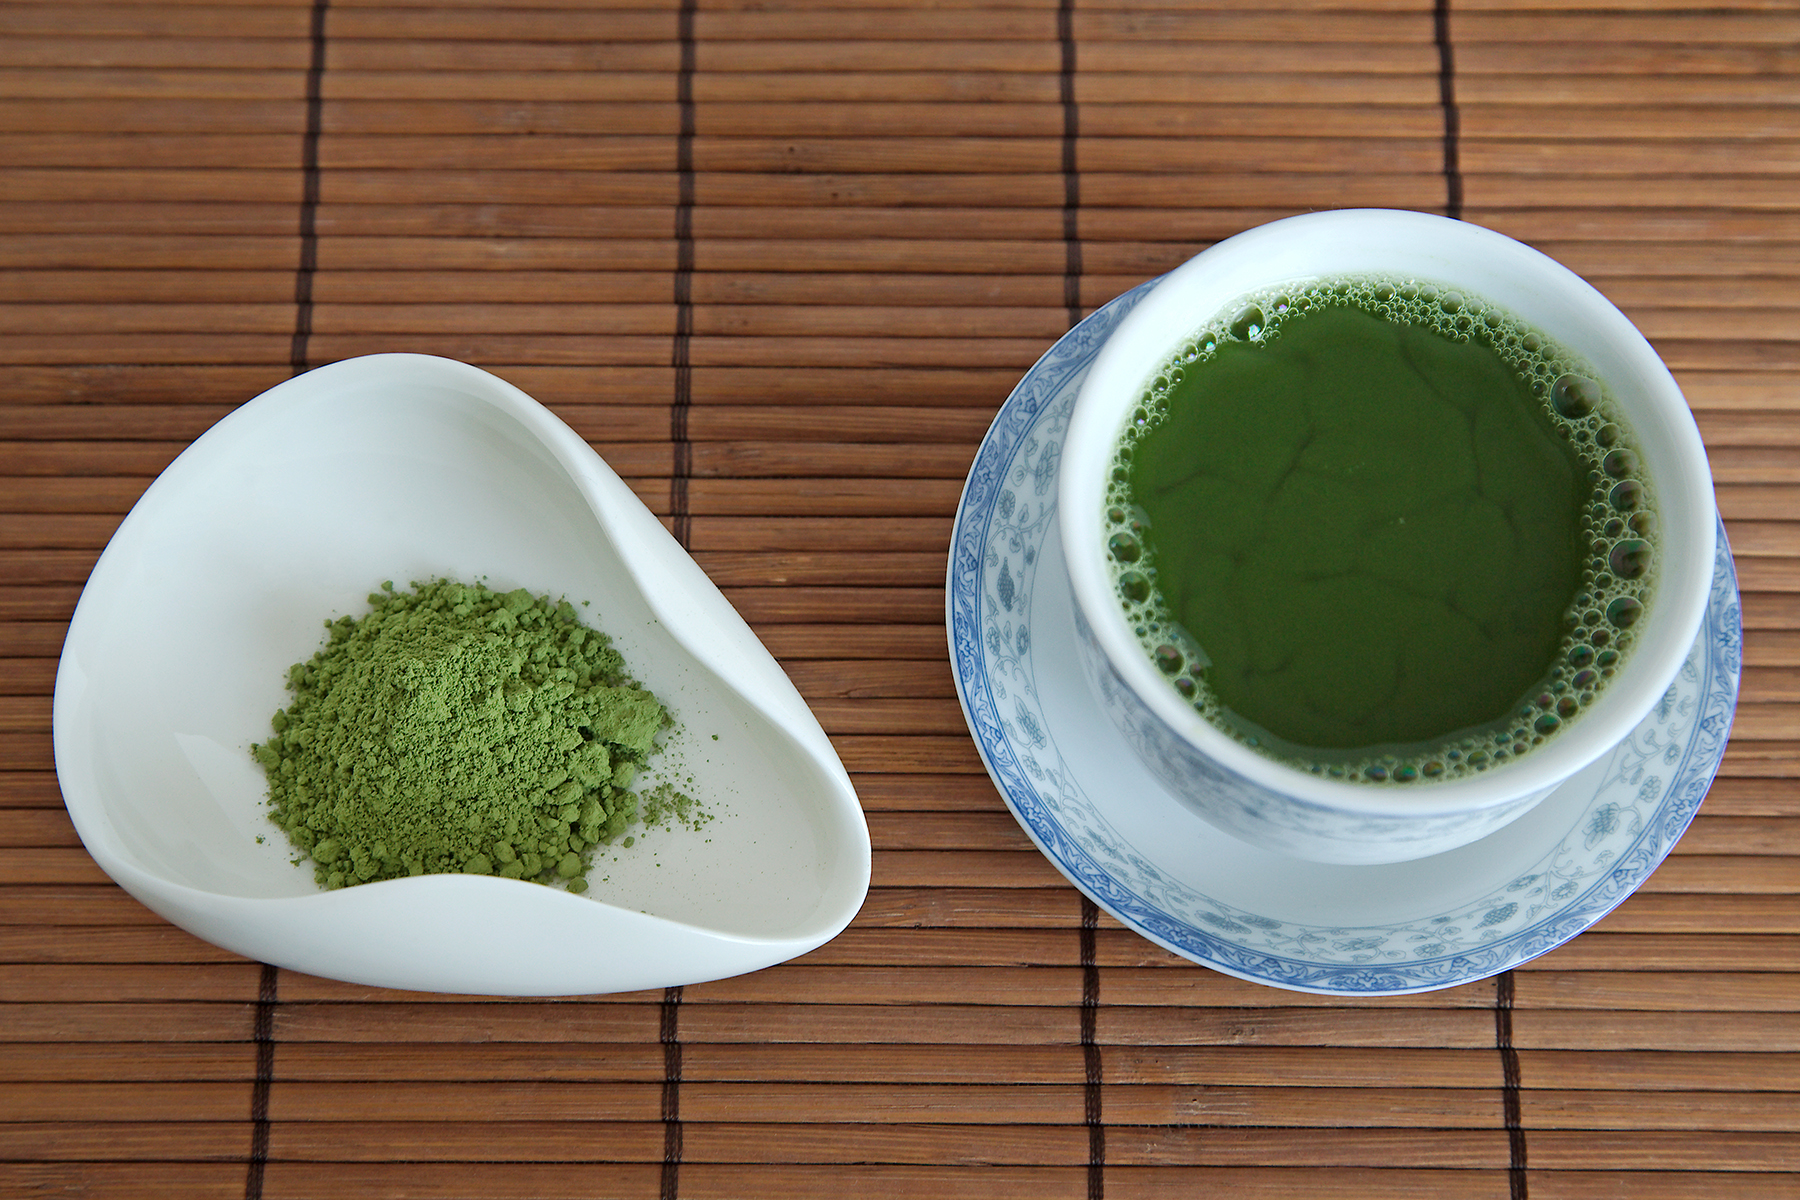 Tea Review: Manju Matcha - Red Leaf Tea